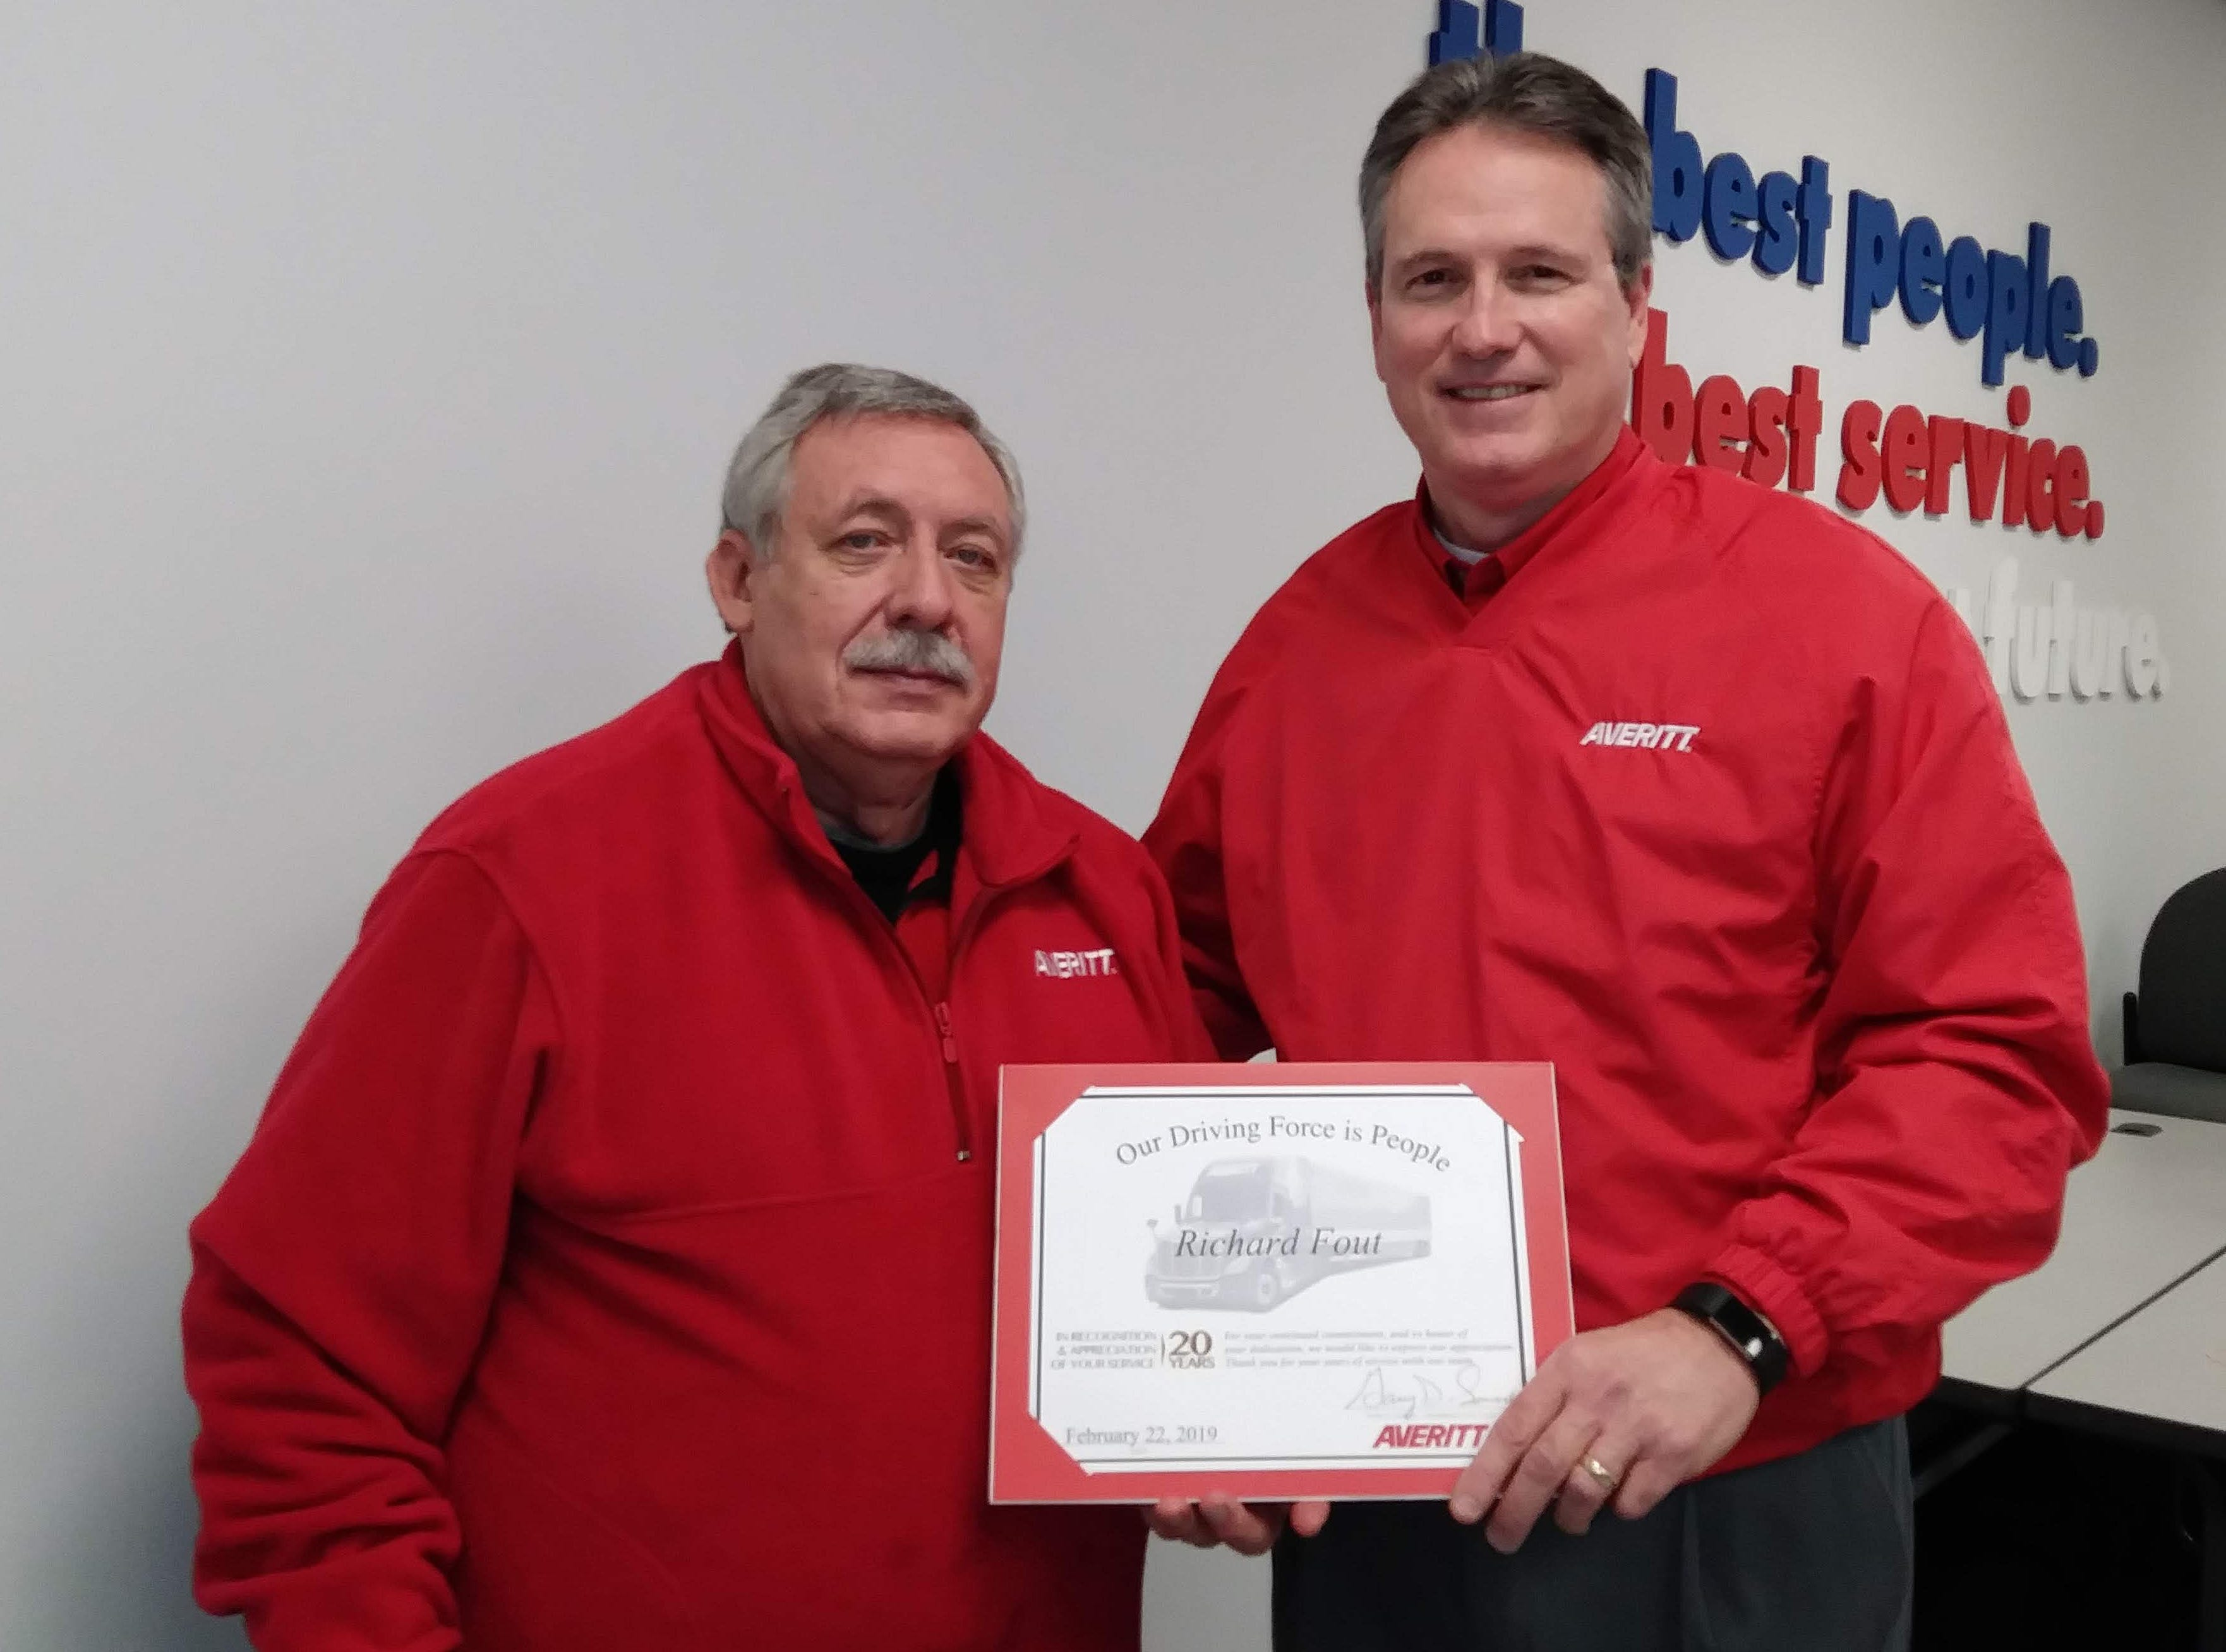 """Averitt Express recently honored associate Richard Fout of Knoxville for 20 years of service. He is now among the more than 1,100 active Averitt associates who are members of the company's """"Over 20 Team,"""" an exclusive group of associates who have served 20 or more years with Averitt."""